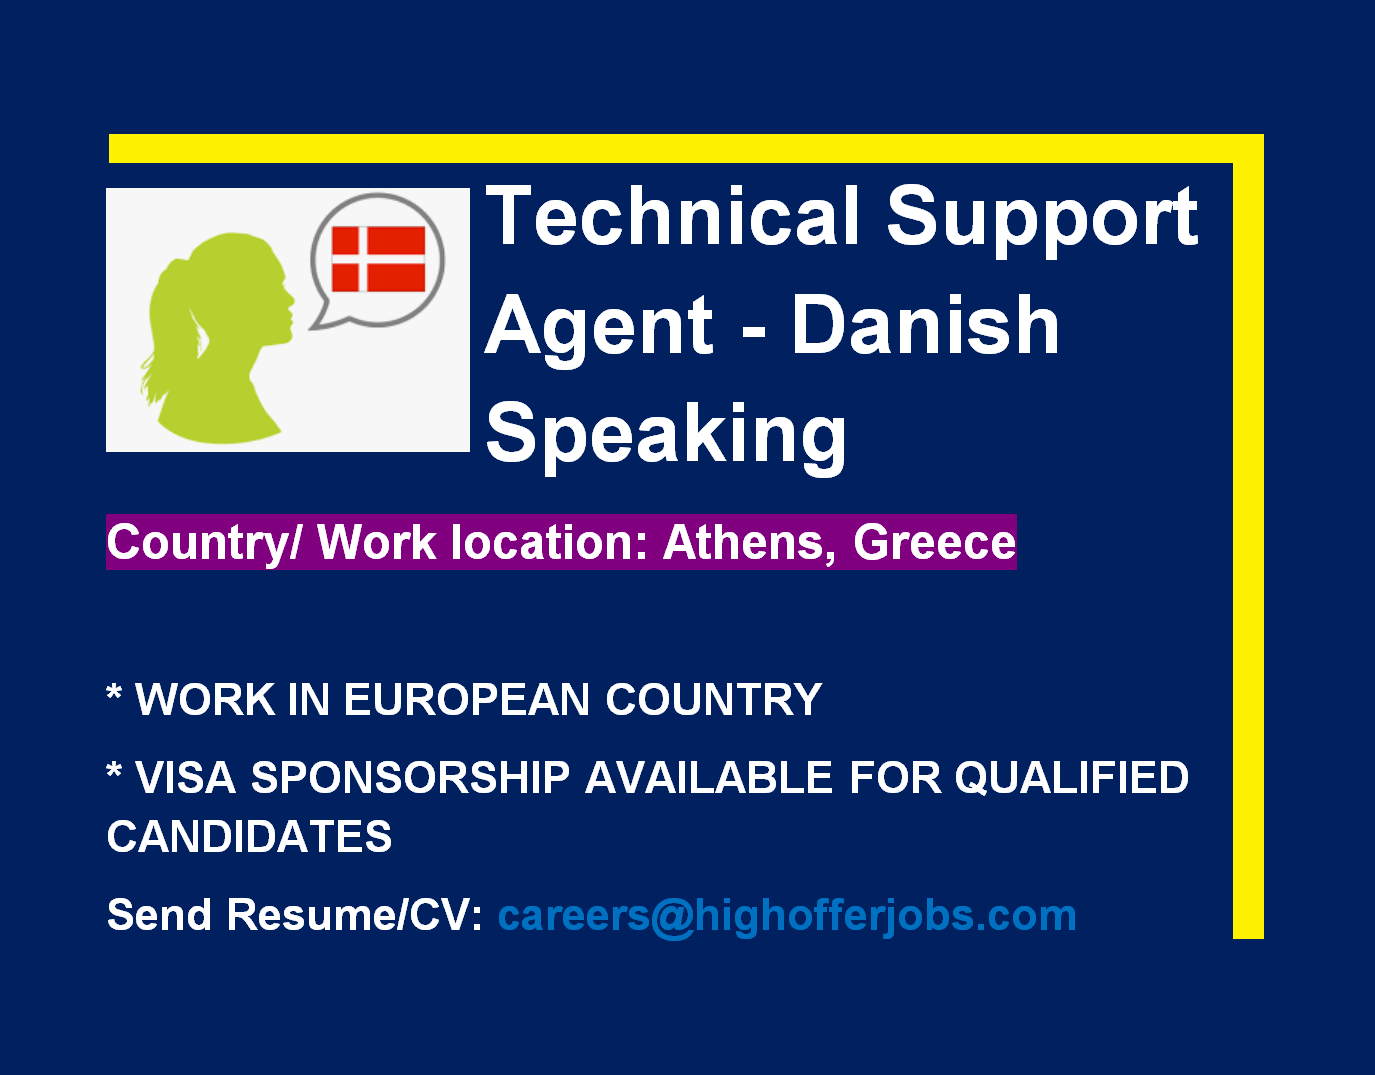 Danish Speaking Technical Support